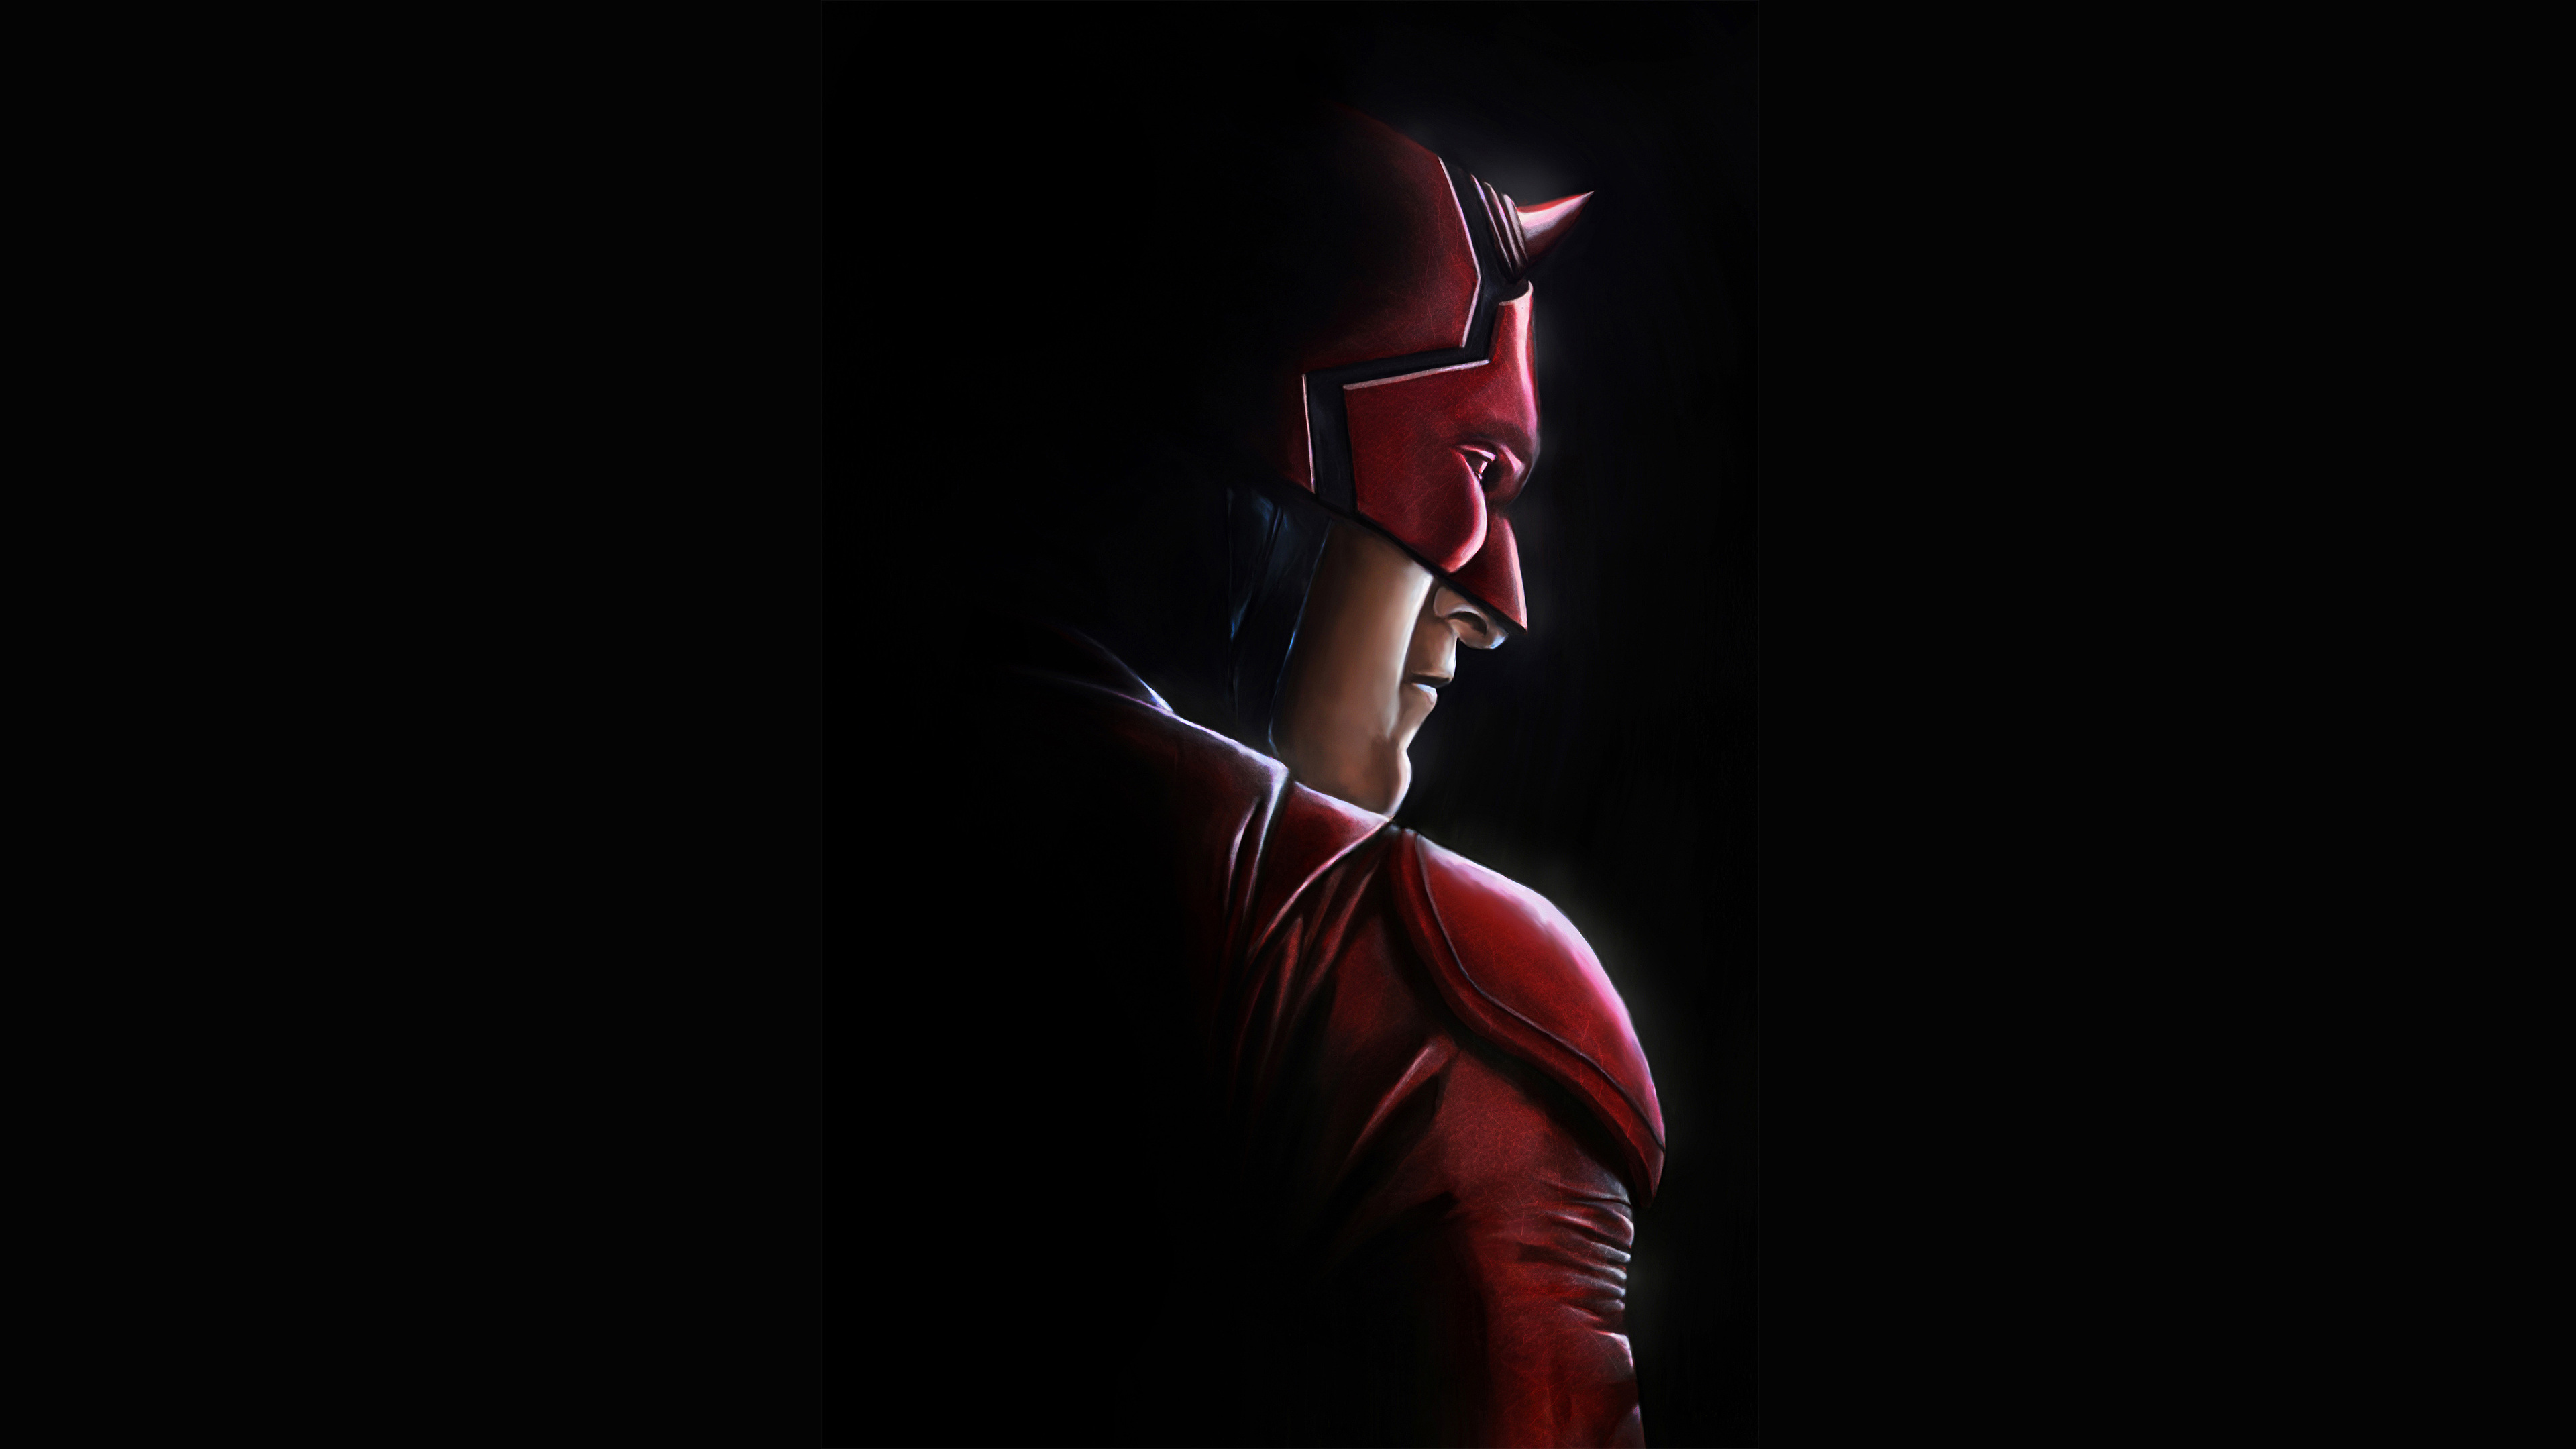 daredevil artwork 5k 1536523573 - Daredevil Artwork 5k - superheroes wallpapers, minimalism wallpapers, hd-wallpapers, digital art wallpapers, daredevil wallpapers, artwork wallpapers, artist wallpapers, 5k wallpapers, 4k-wallpapers